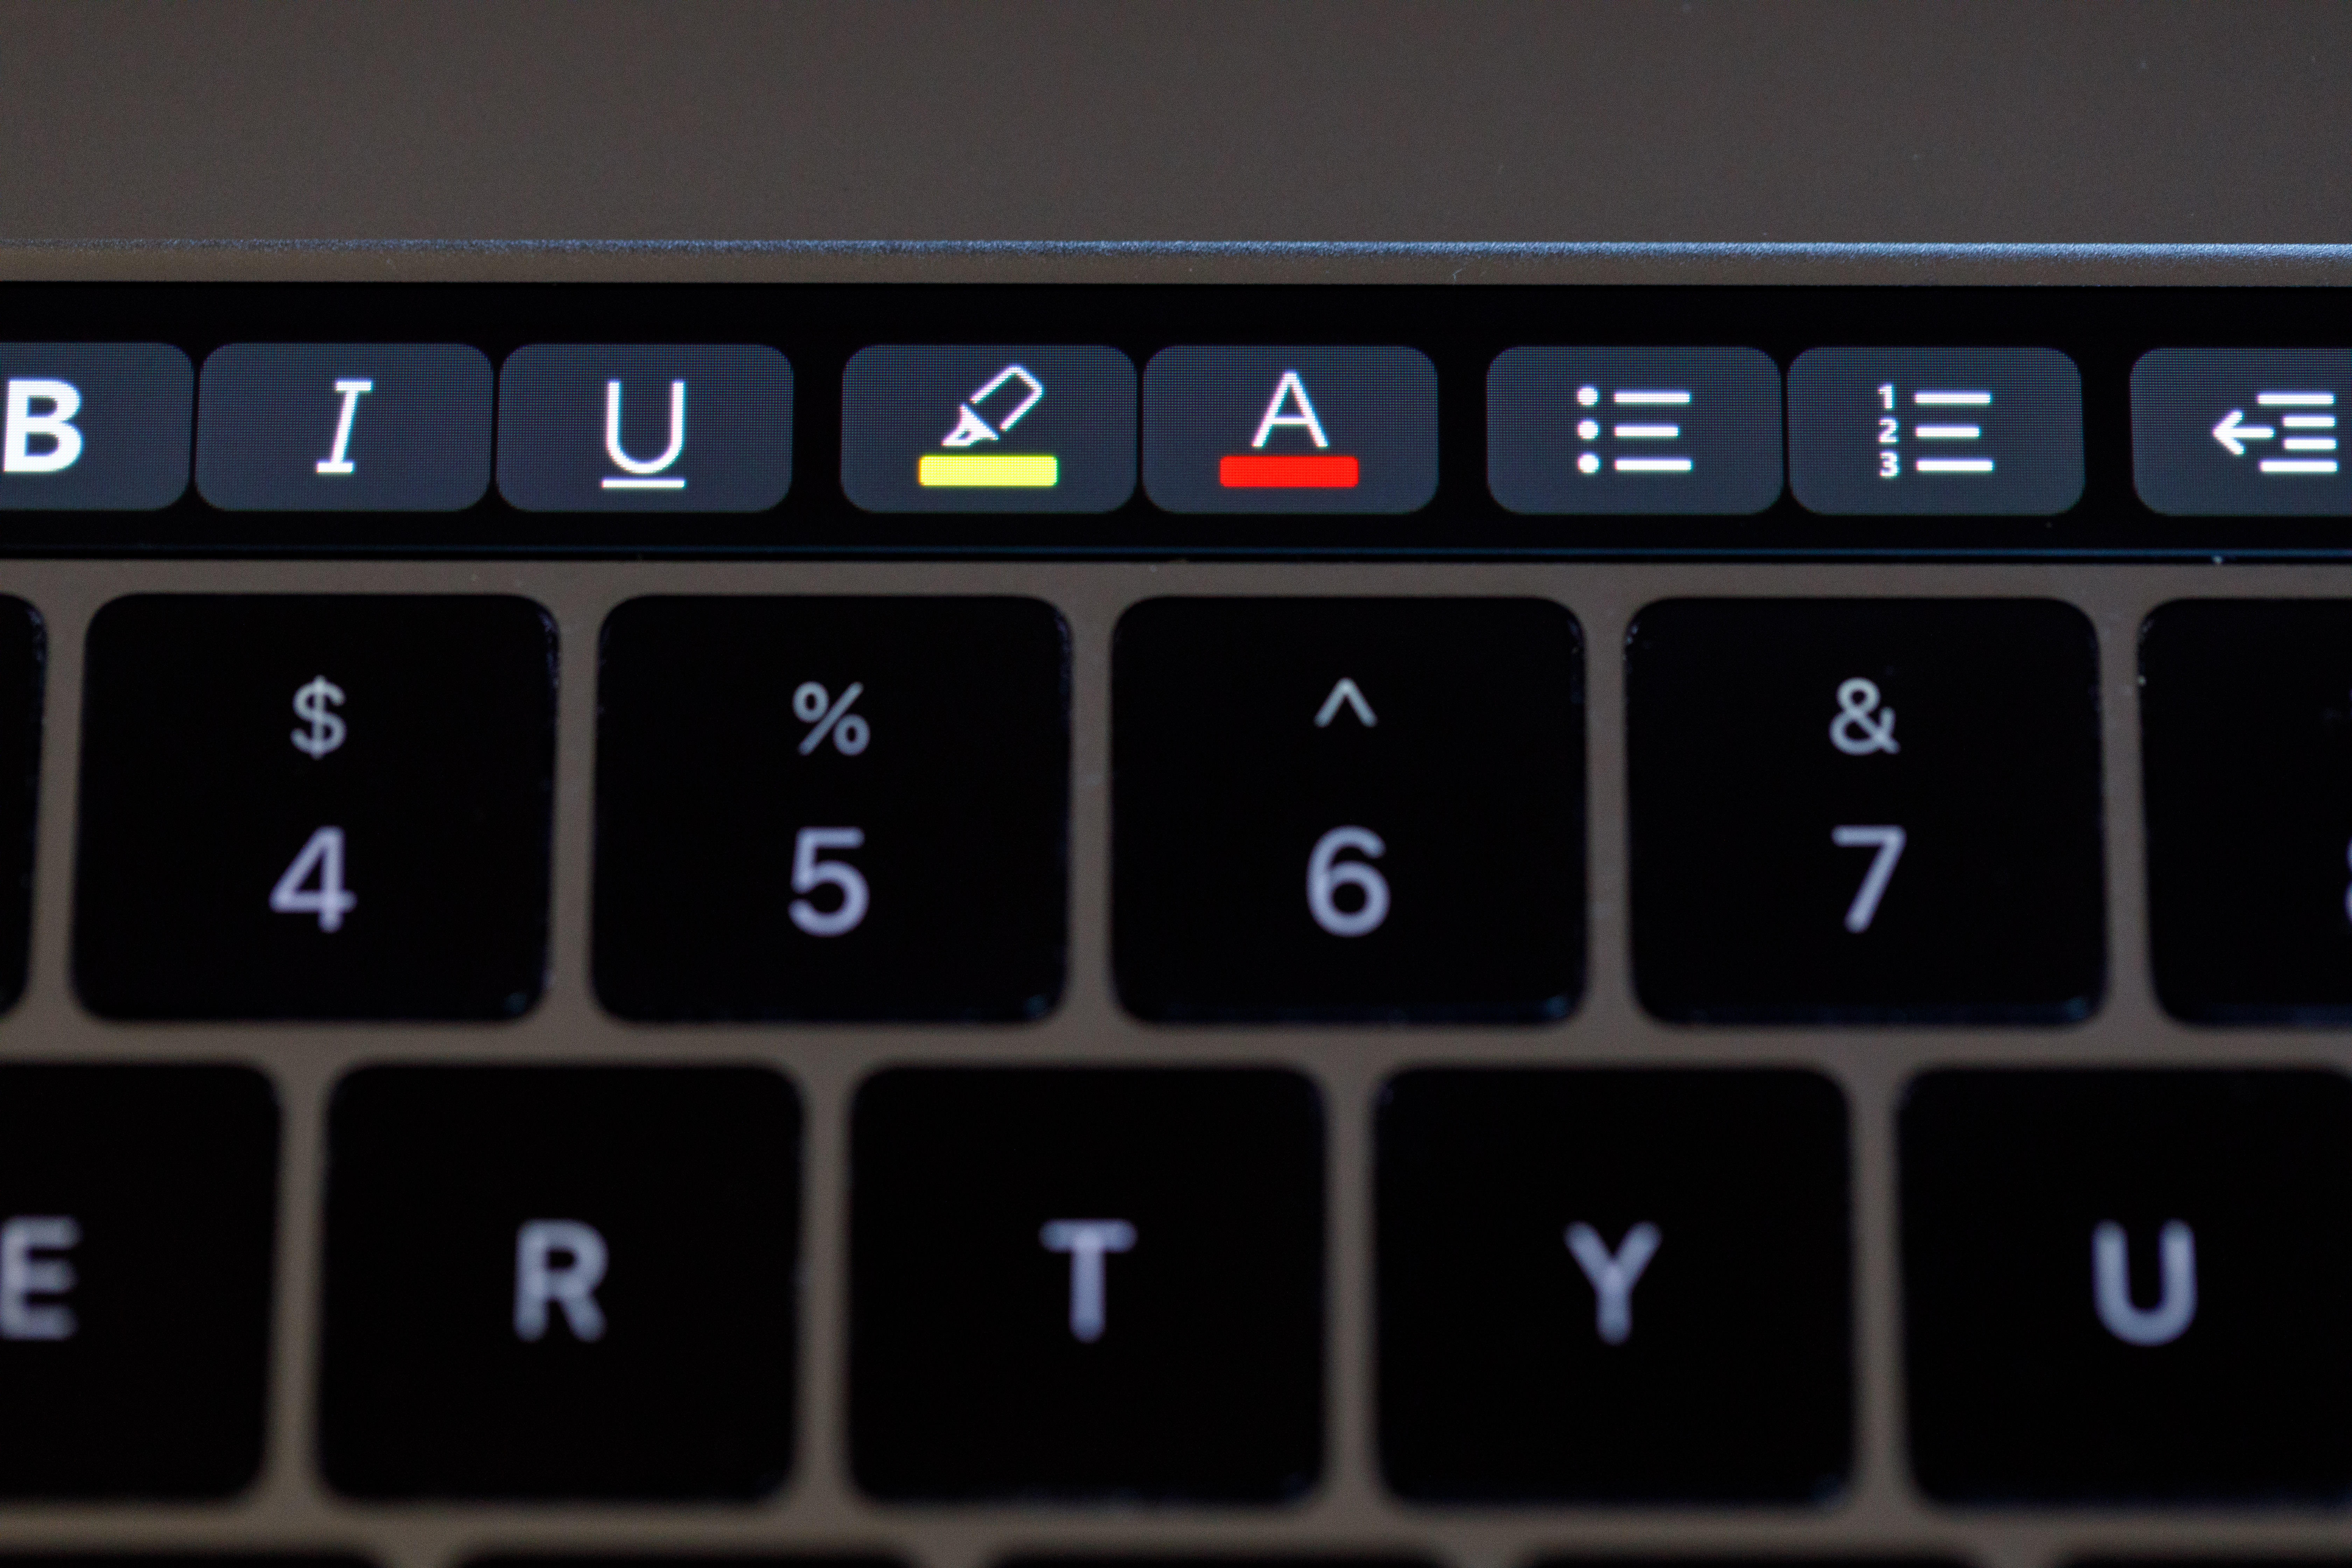 Microsoft Word offers highlight, text color, and other tools through the Touch Bar.